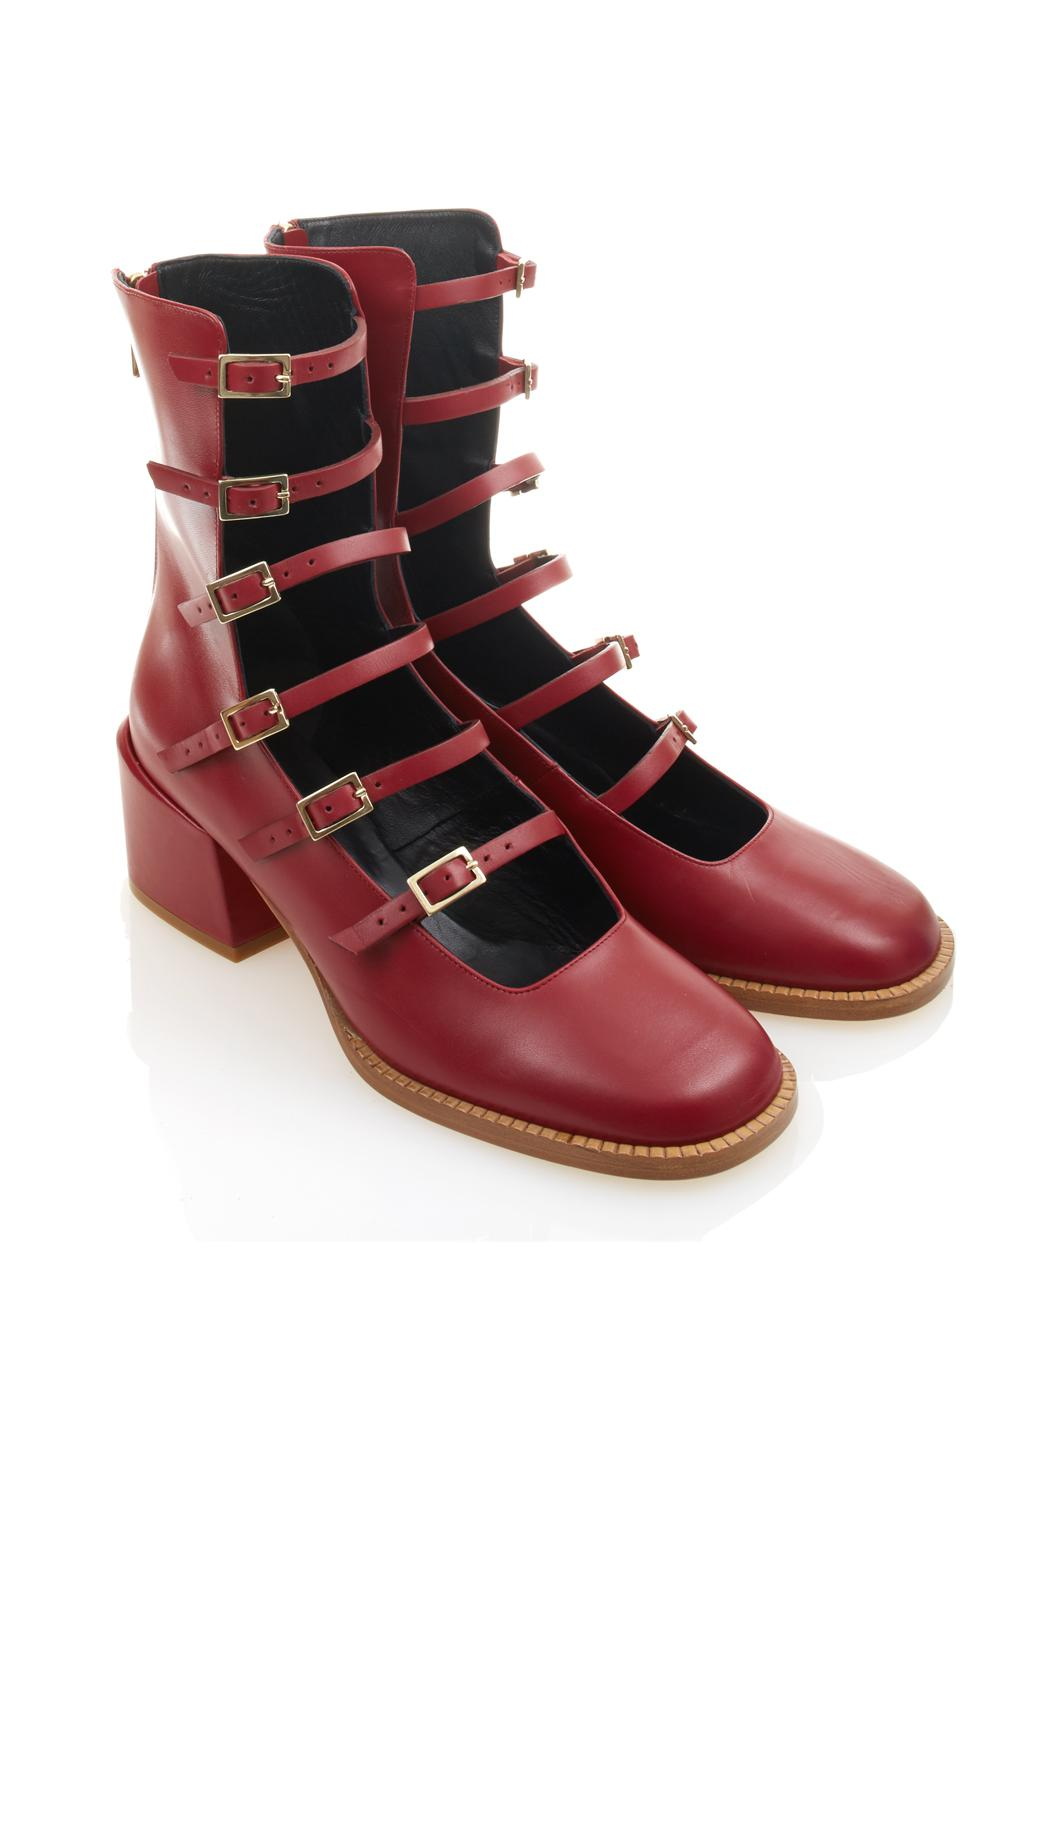 Tibi Leather Kai Buckle-up Boots in Red